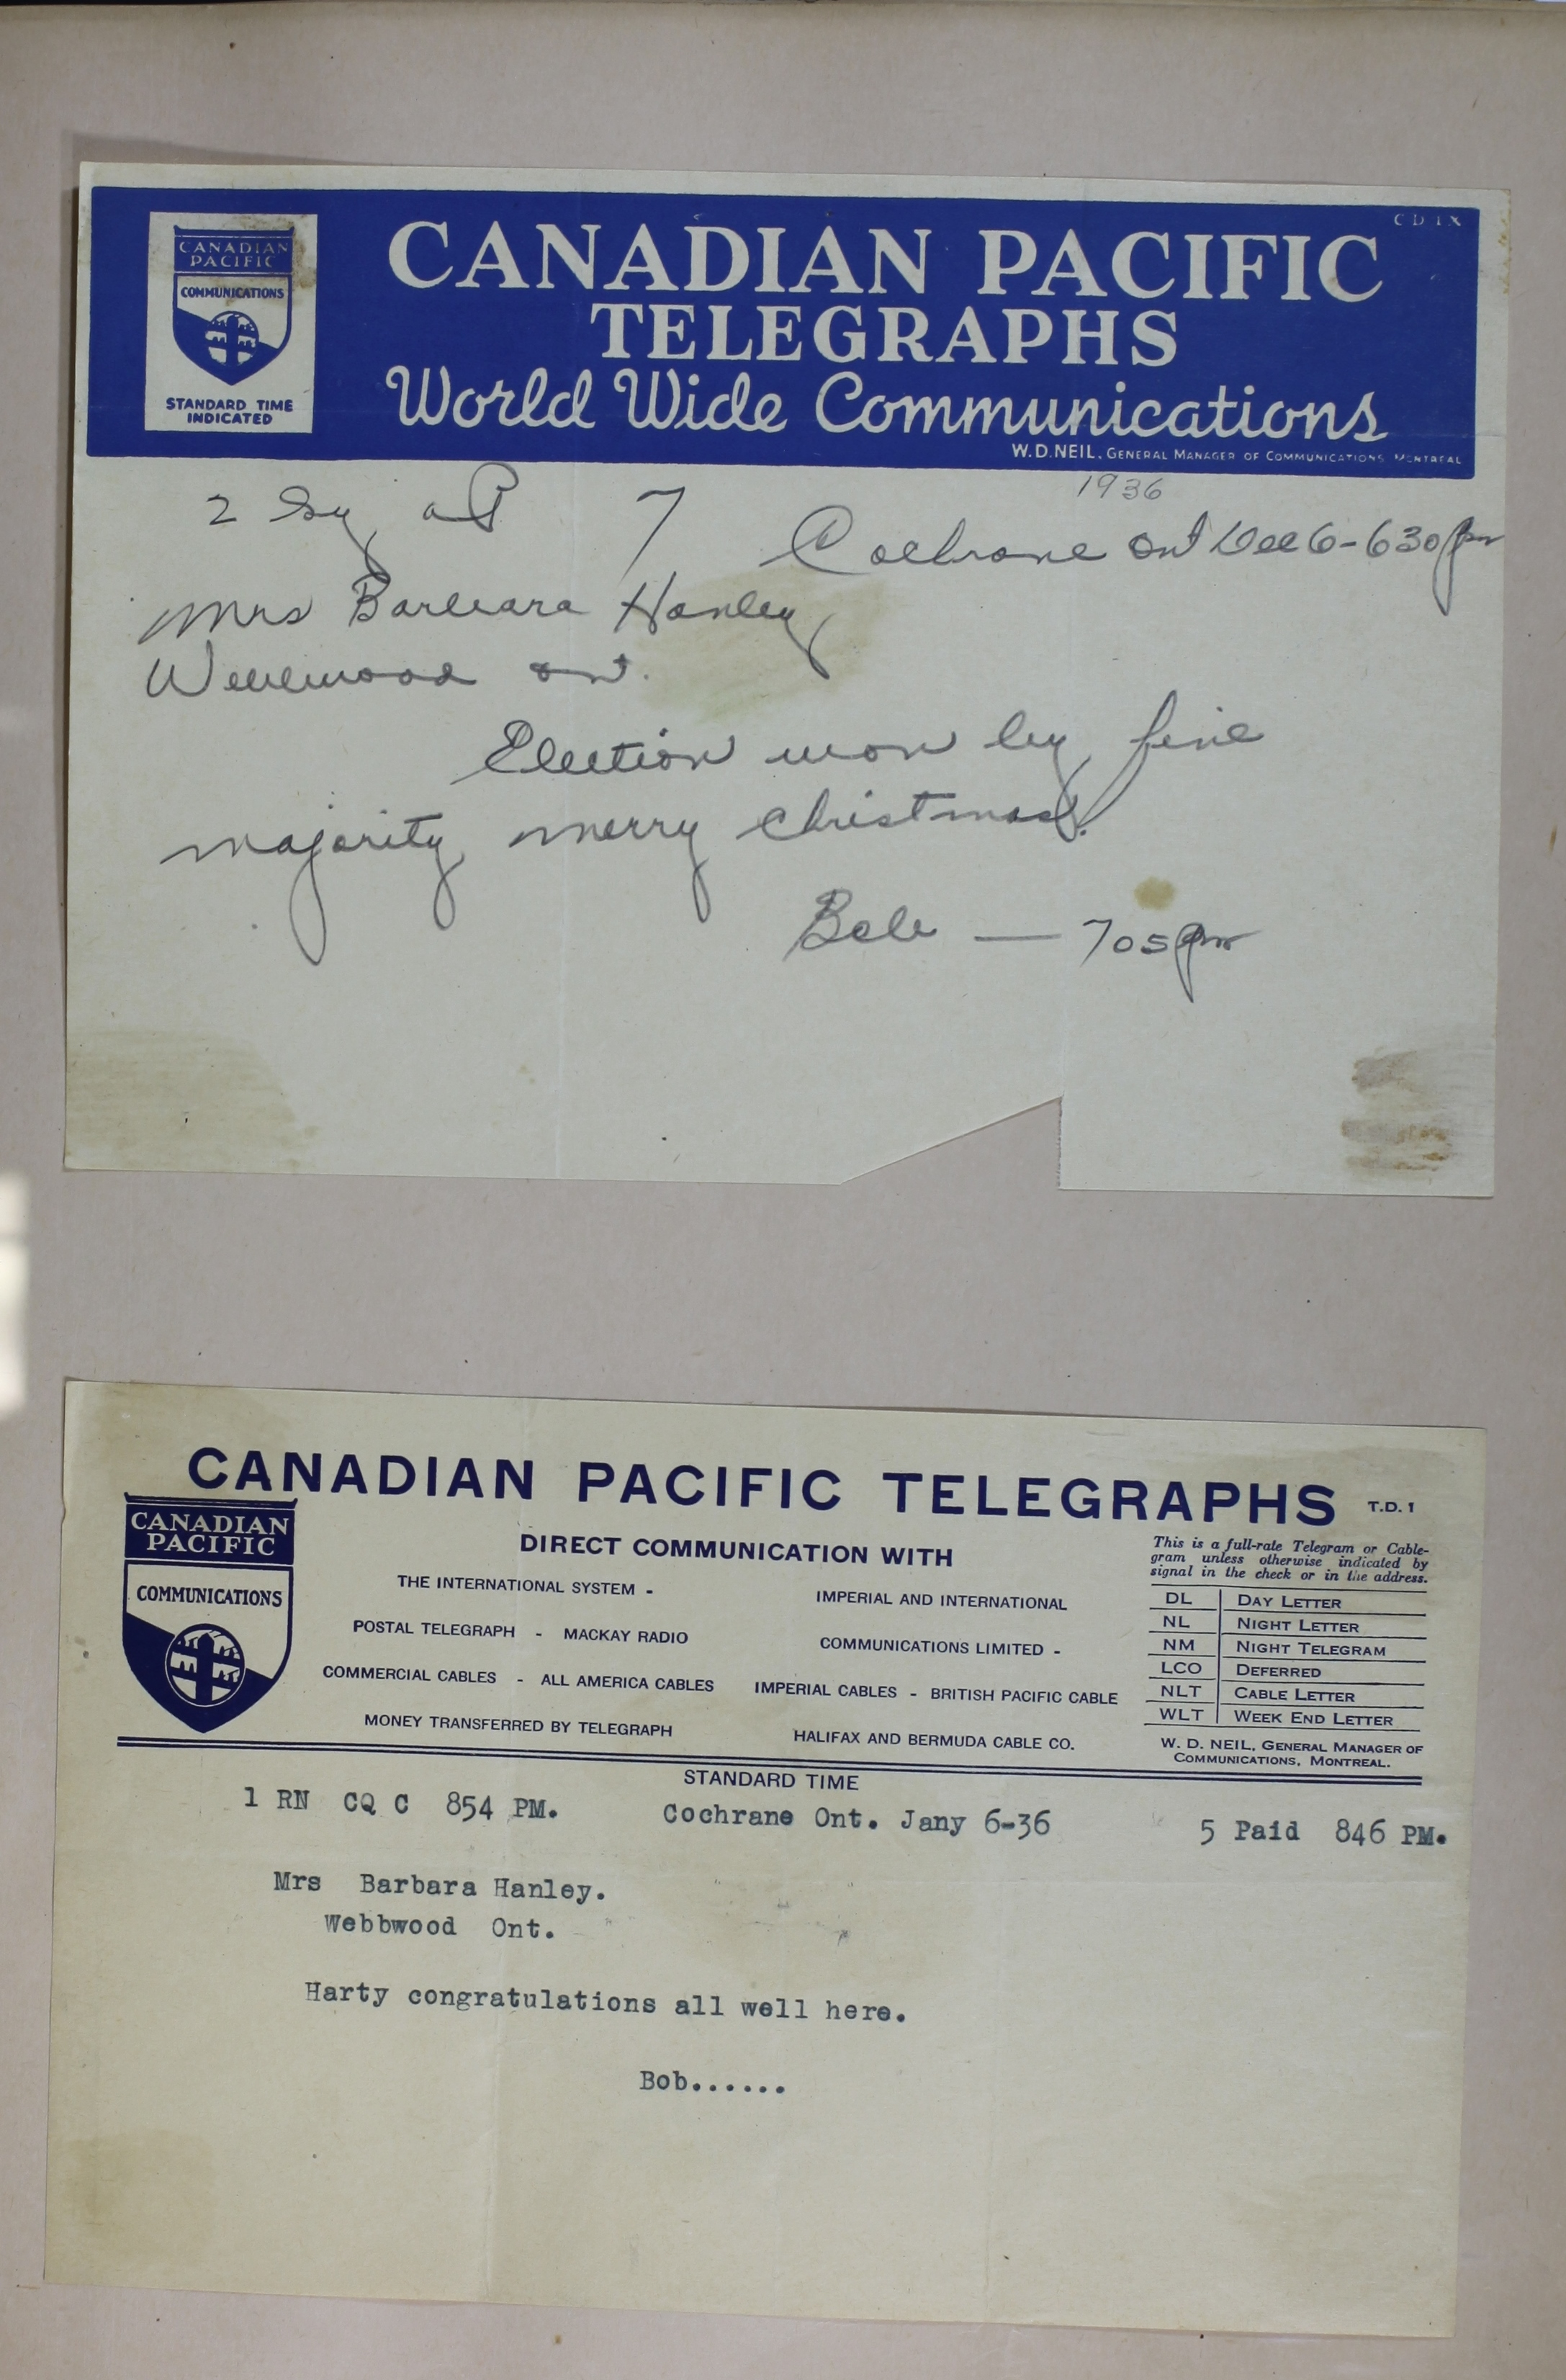 Congratulatory telegram from Hanley\u2019s brother, Robert Smith, 6 January 1936.